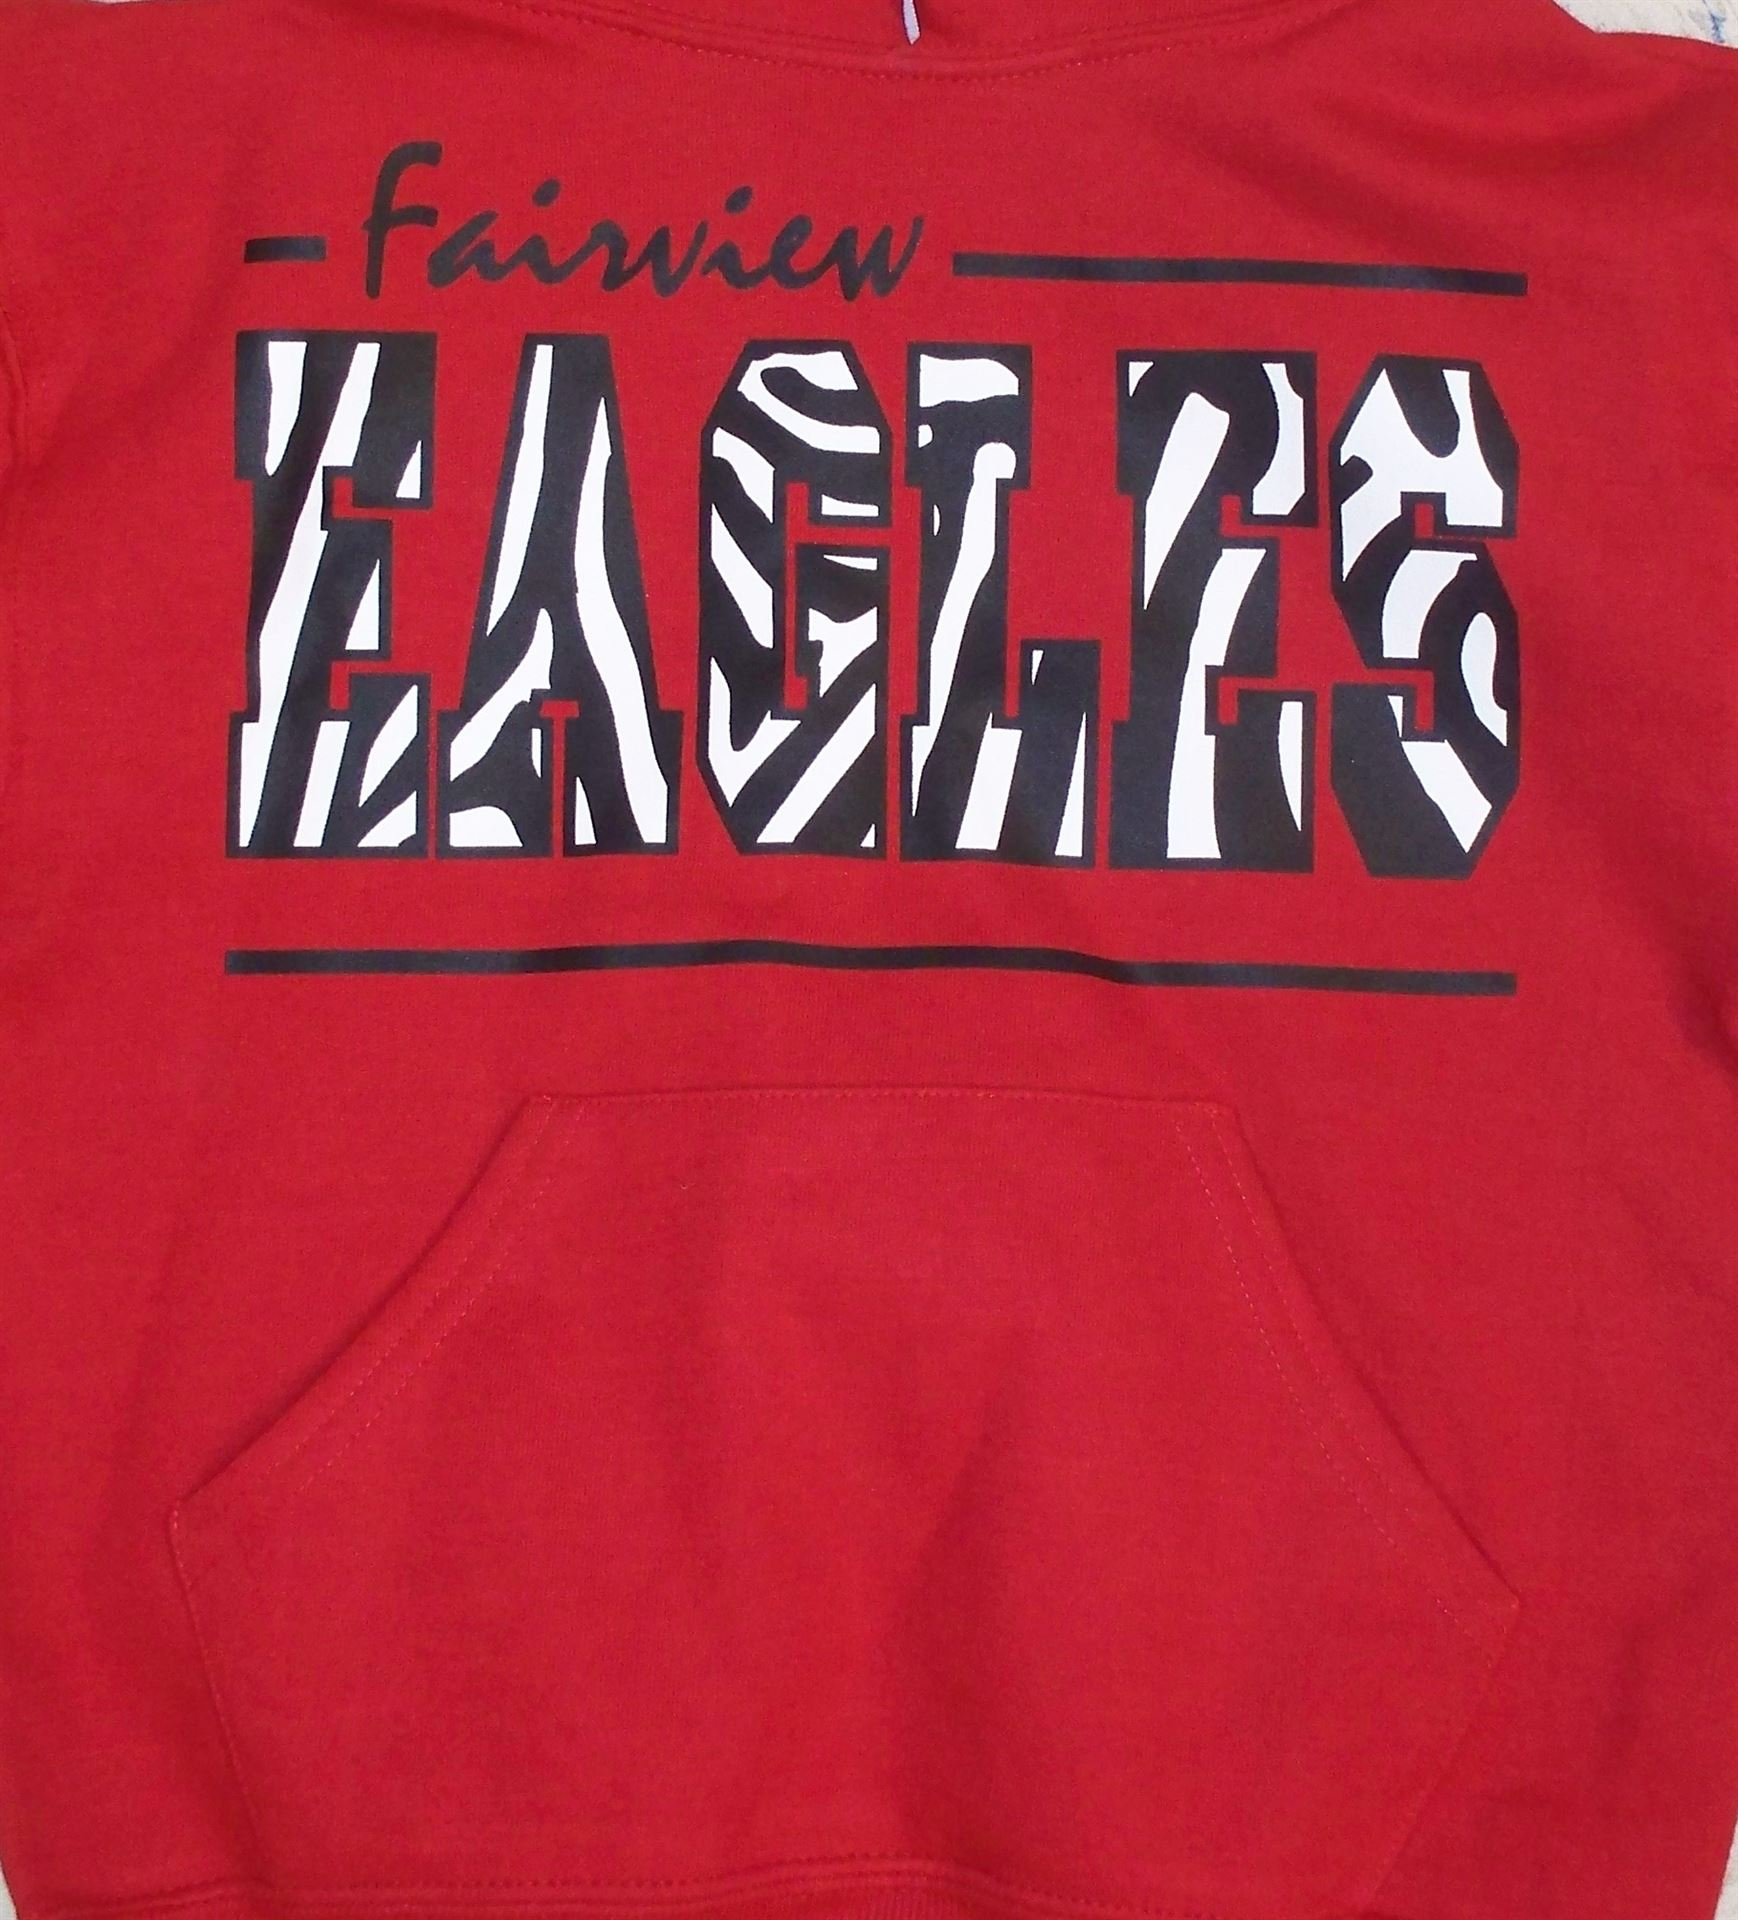 Fairview shirt design 10